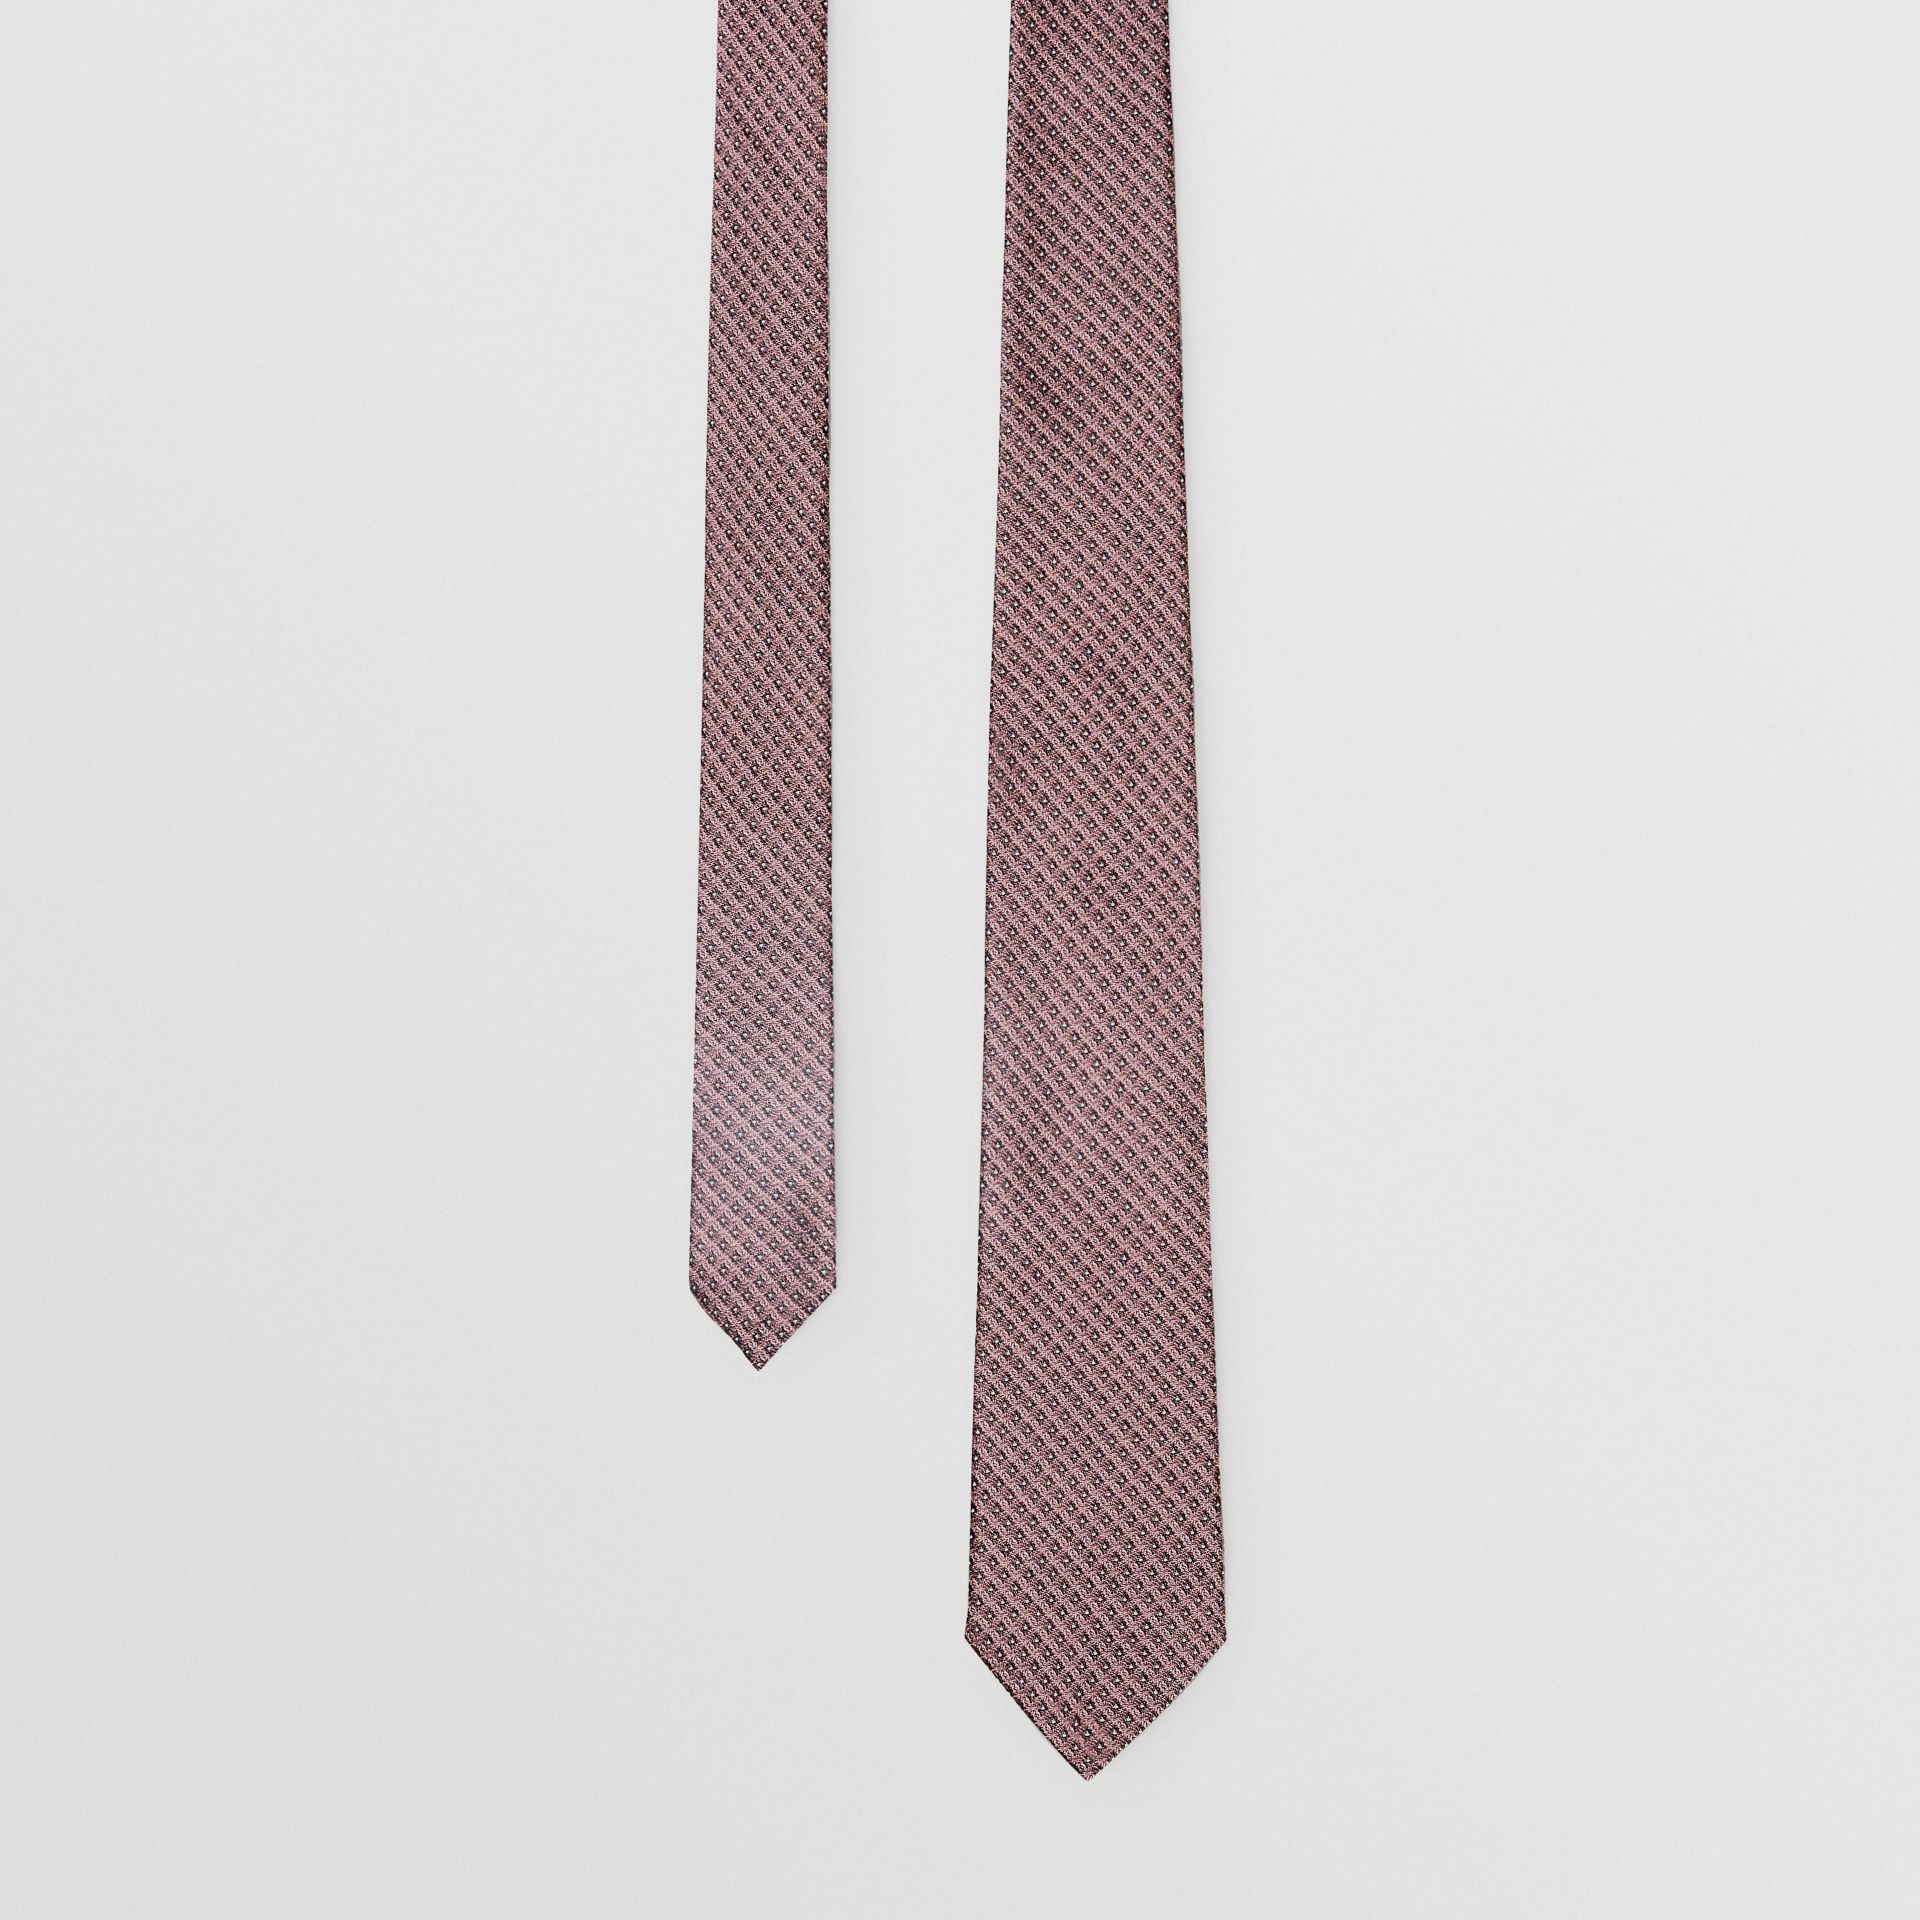 Classic Cut Micro Dot Silk Jacquard Tie in Garnet Pink - Men | Burberry Canada - gallery image 0